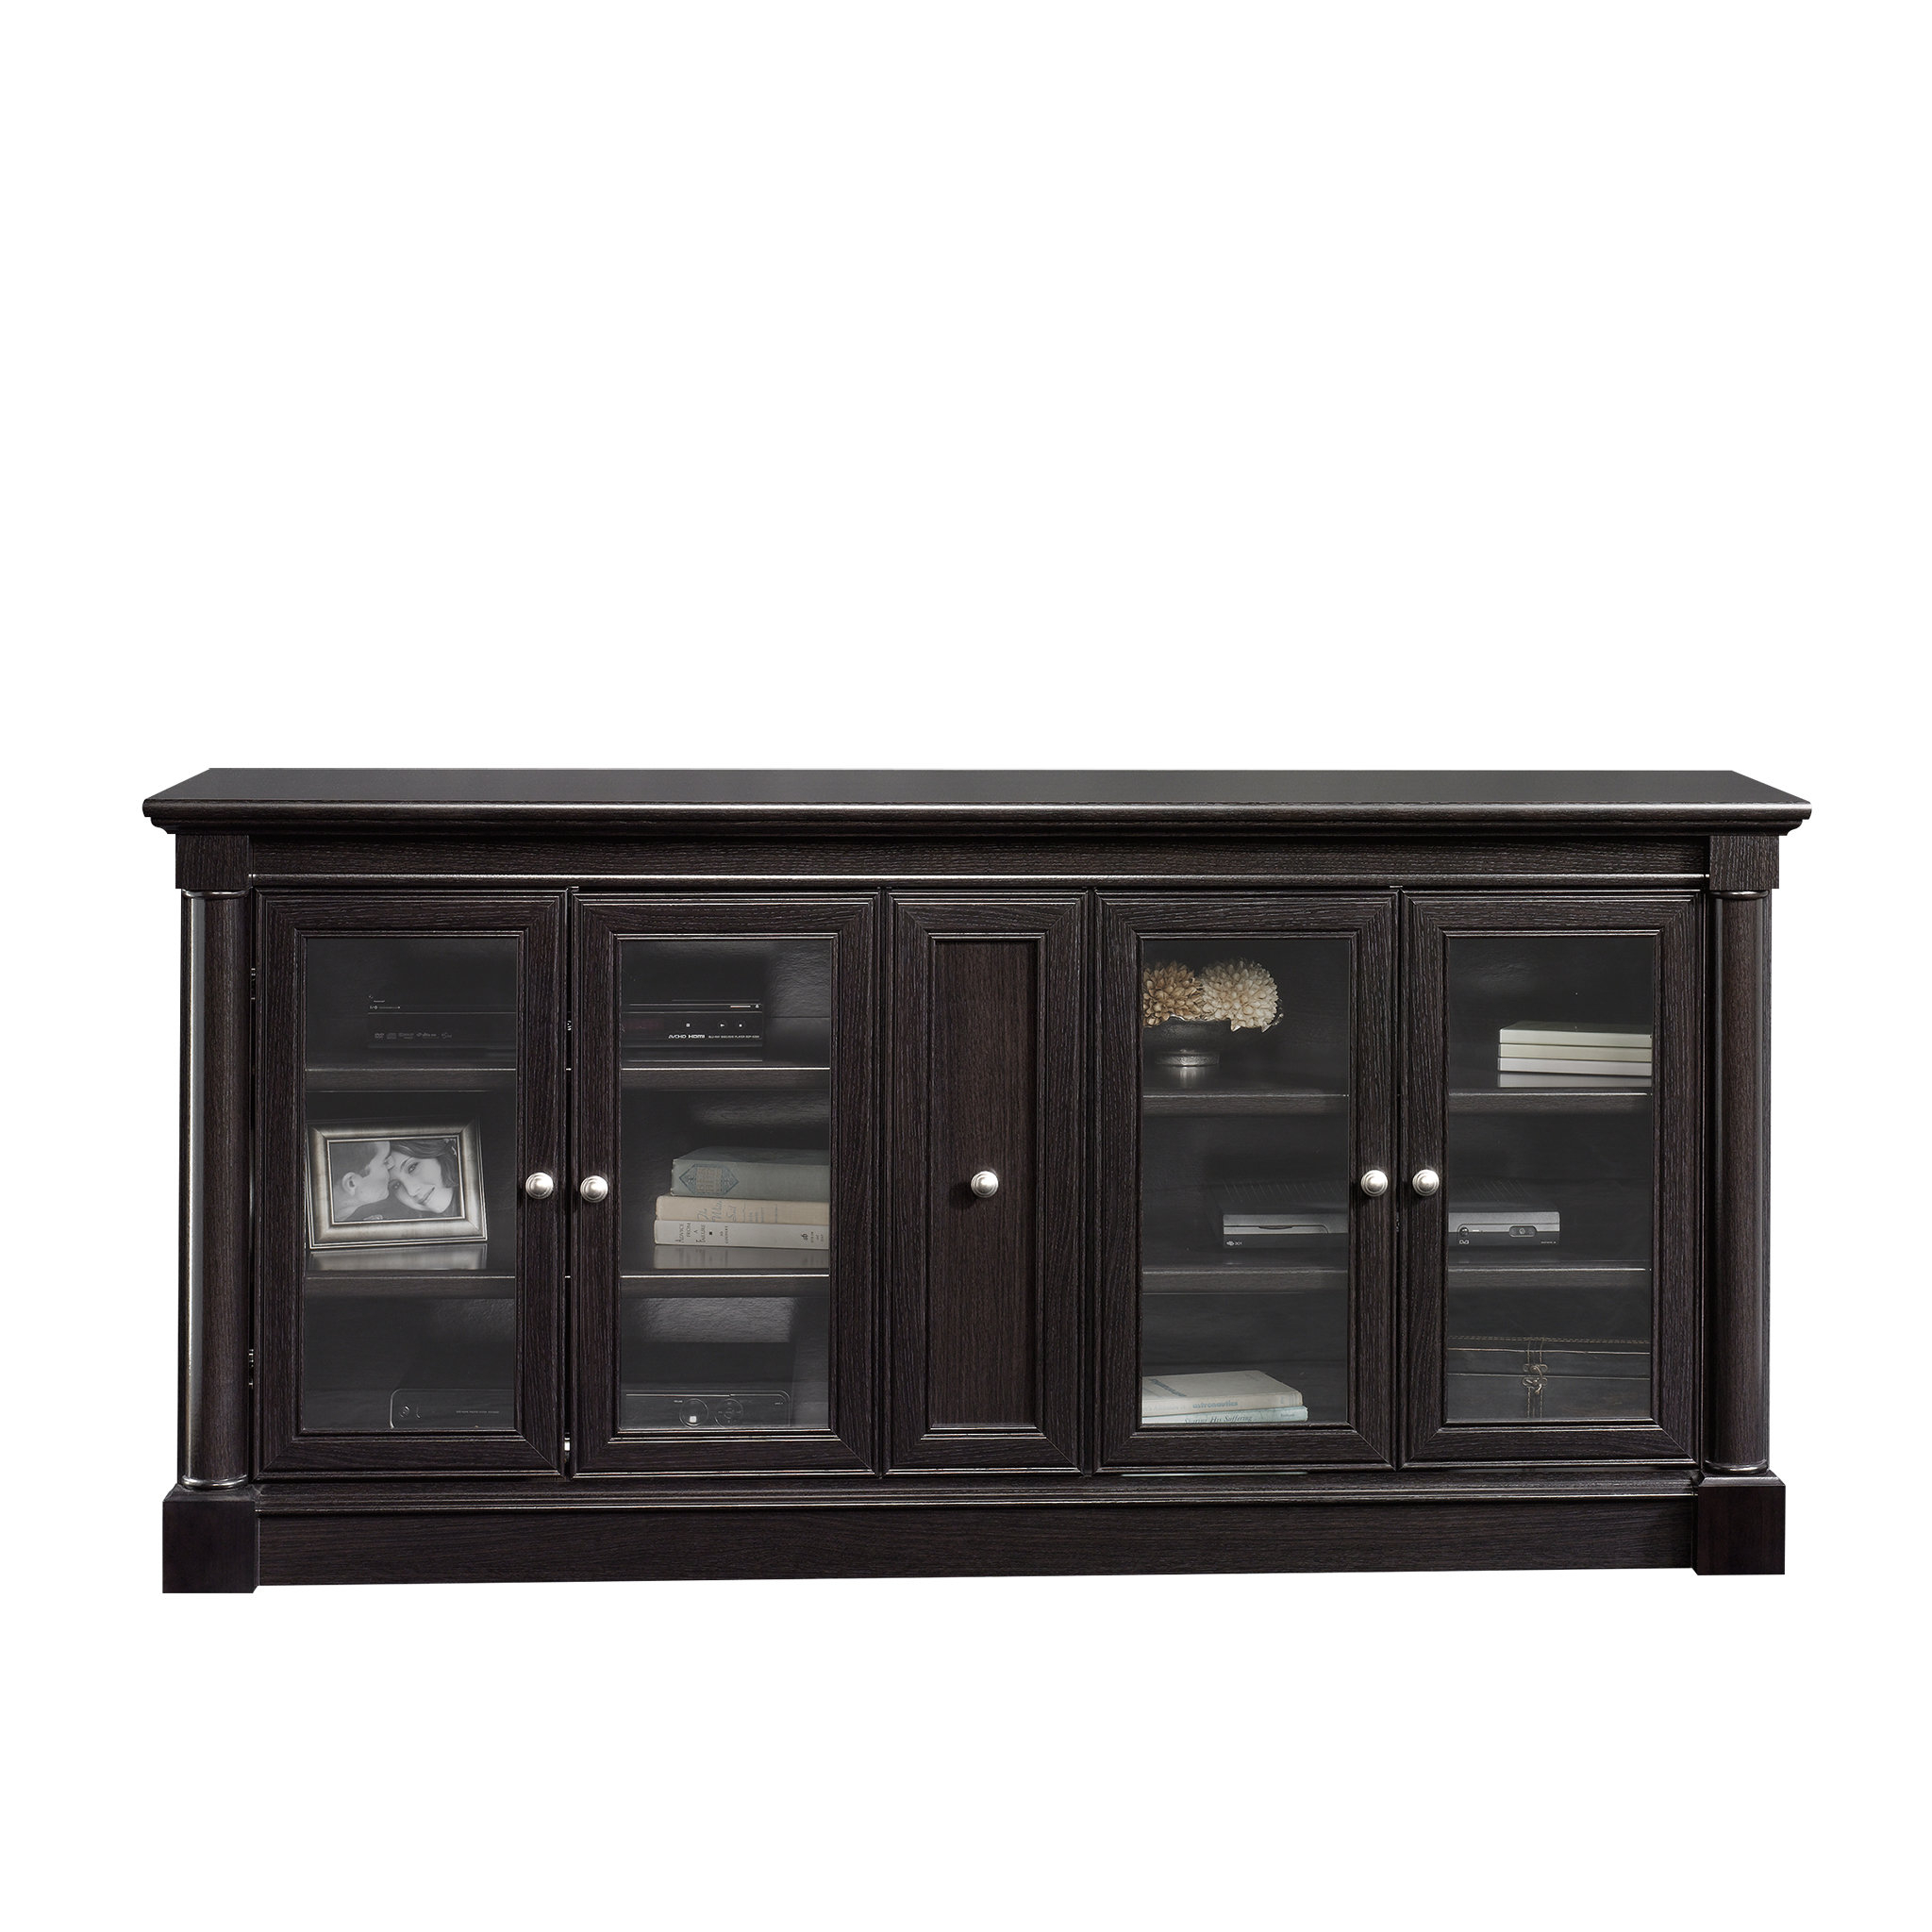 70 Inch Tv Stands | Joss & Main in Annabelle Black 70 Inch Tv Stands (Image 2 of 30)